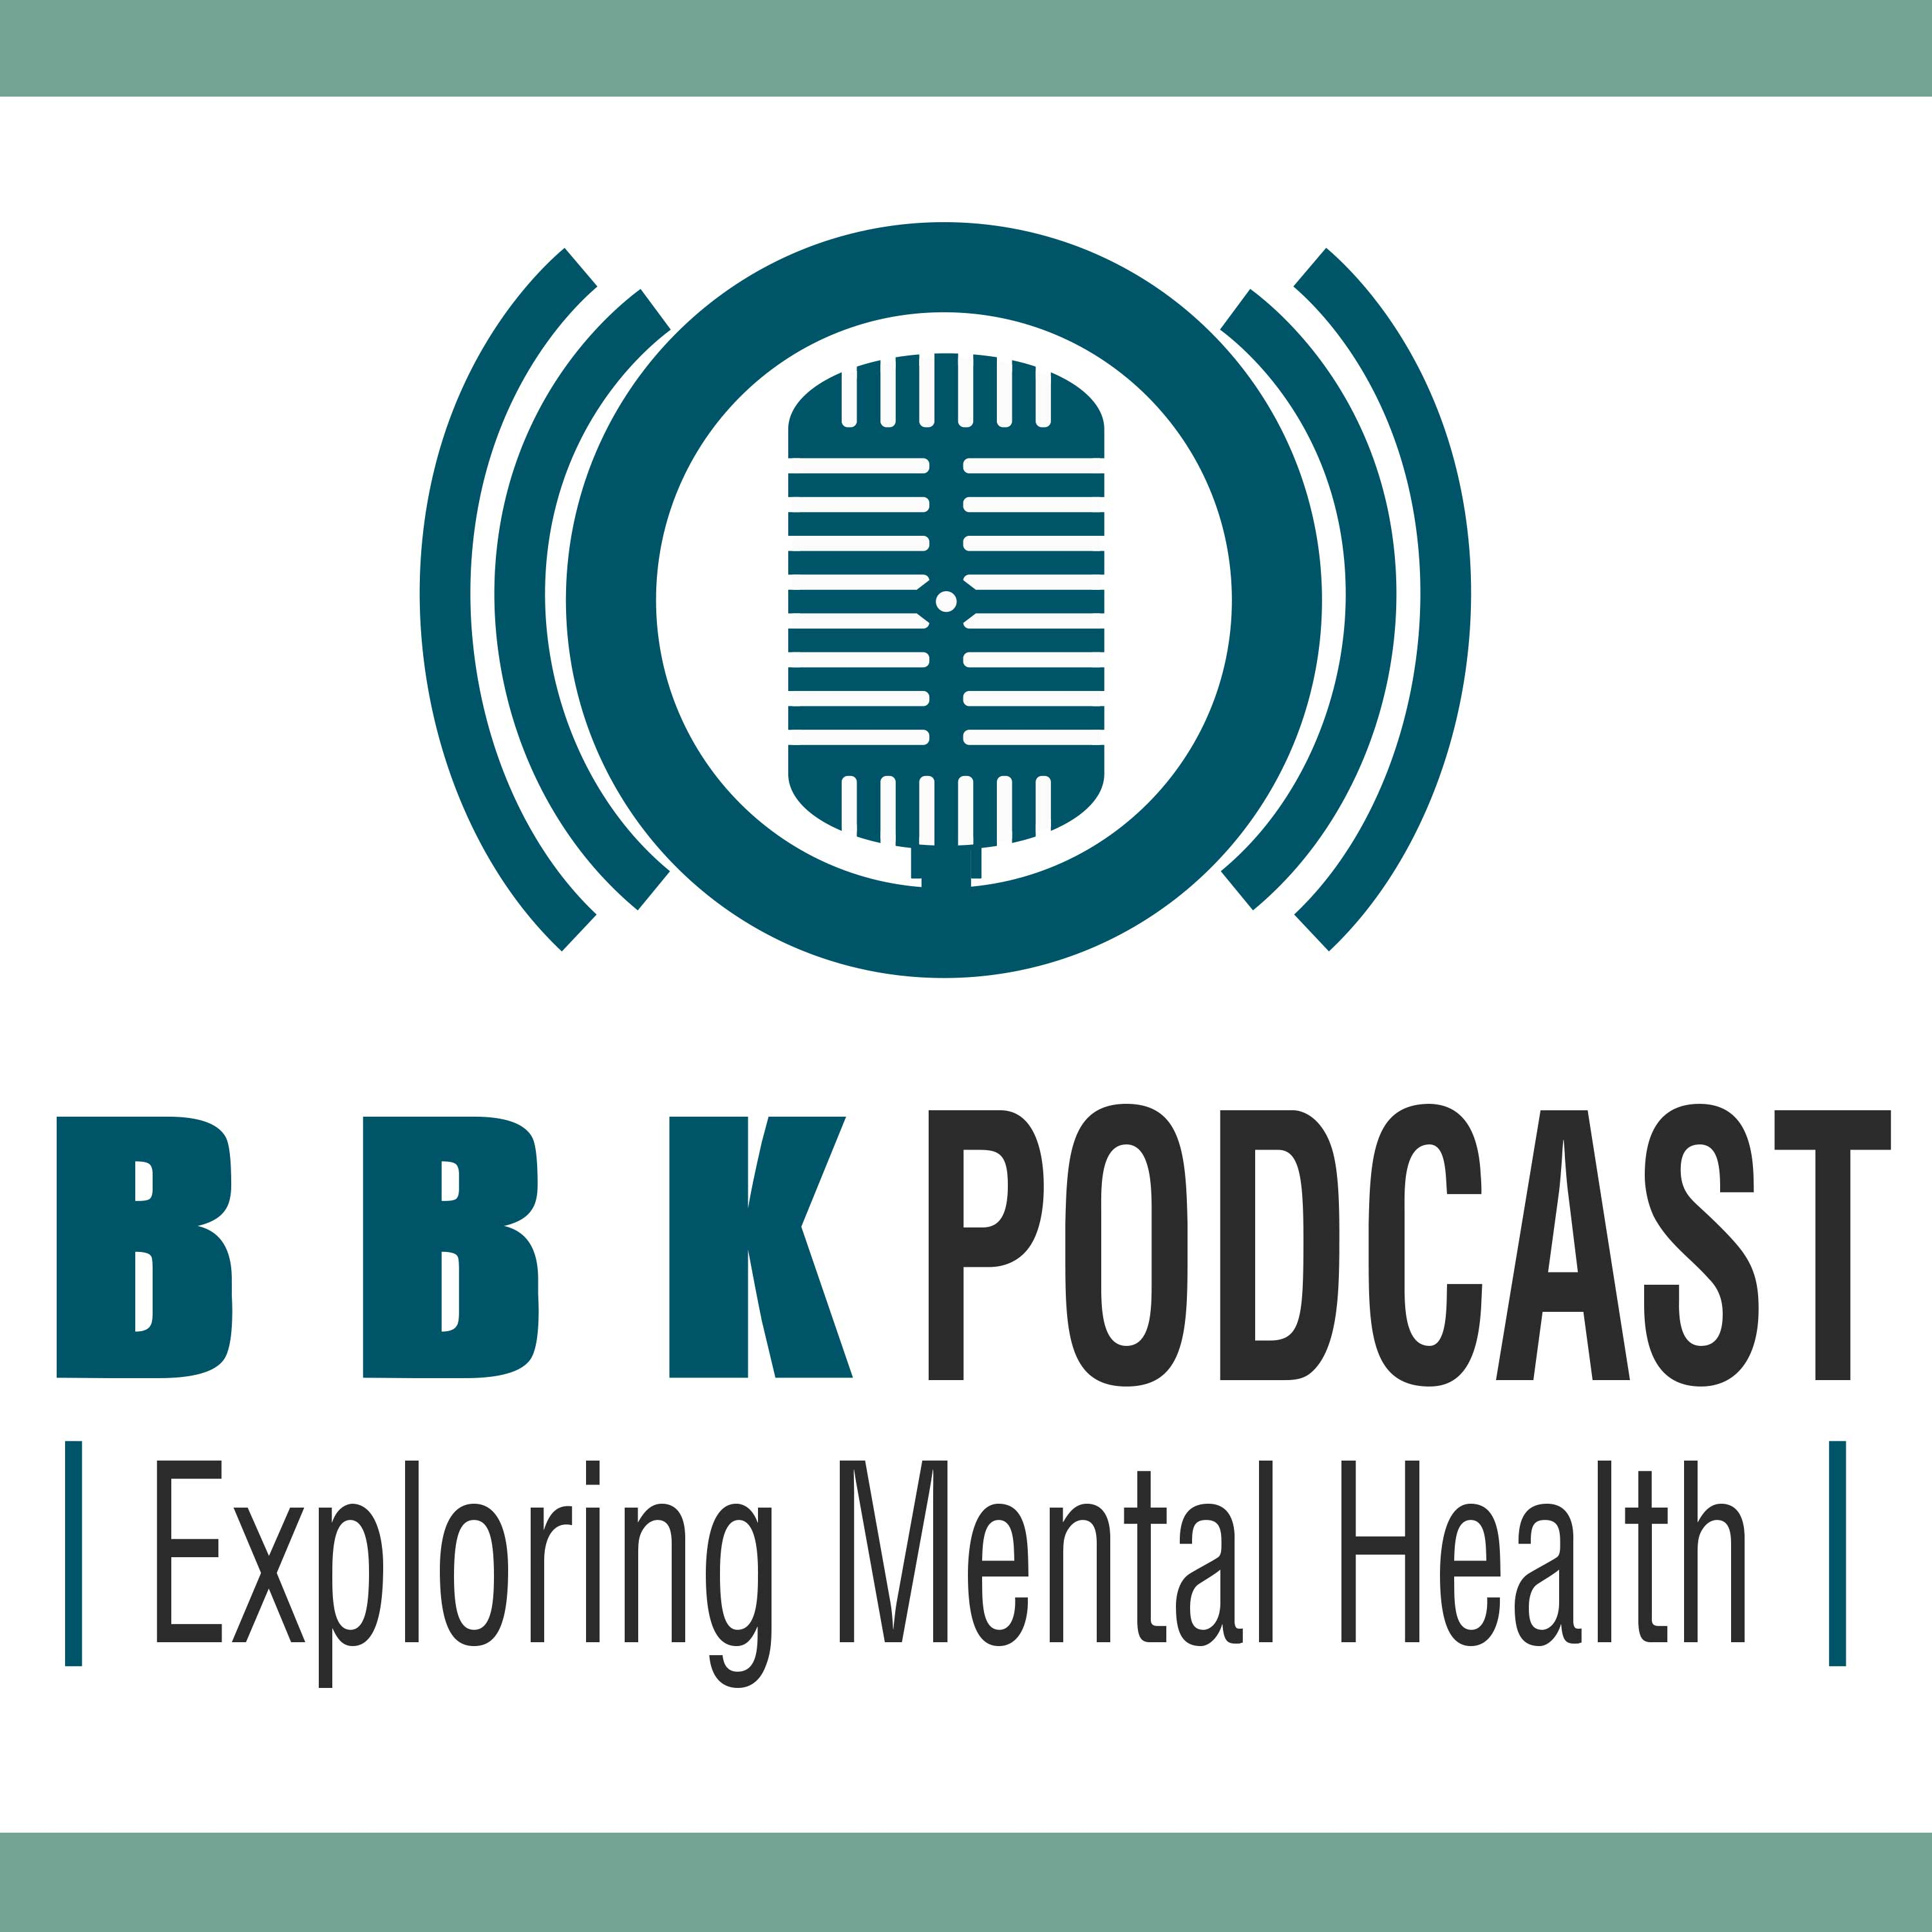 BBK Podcast